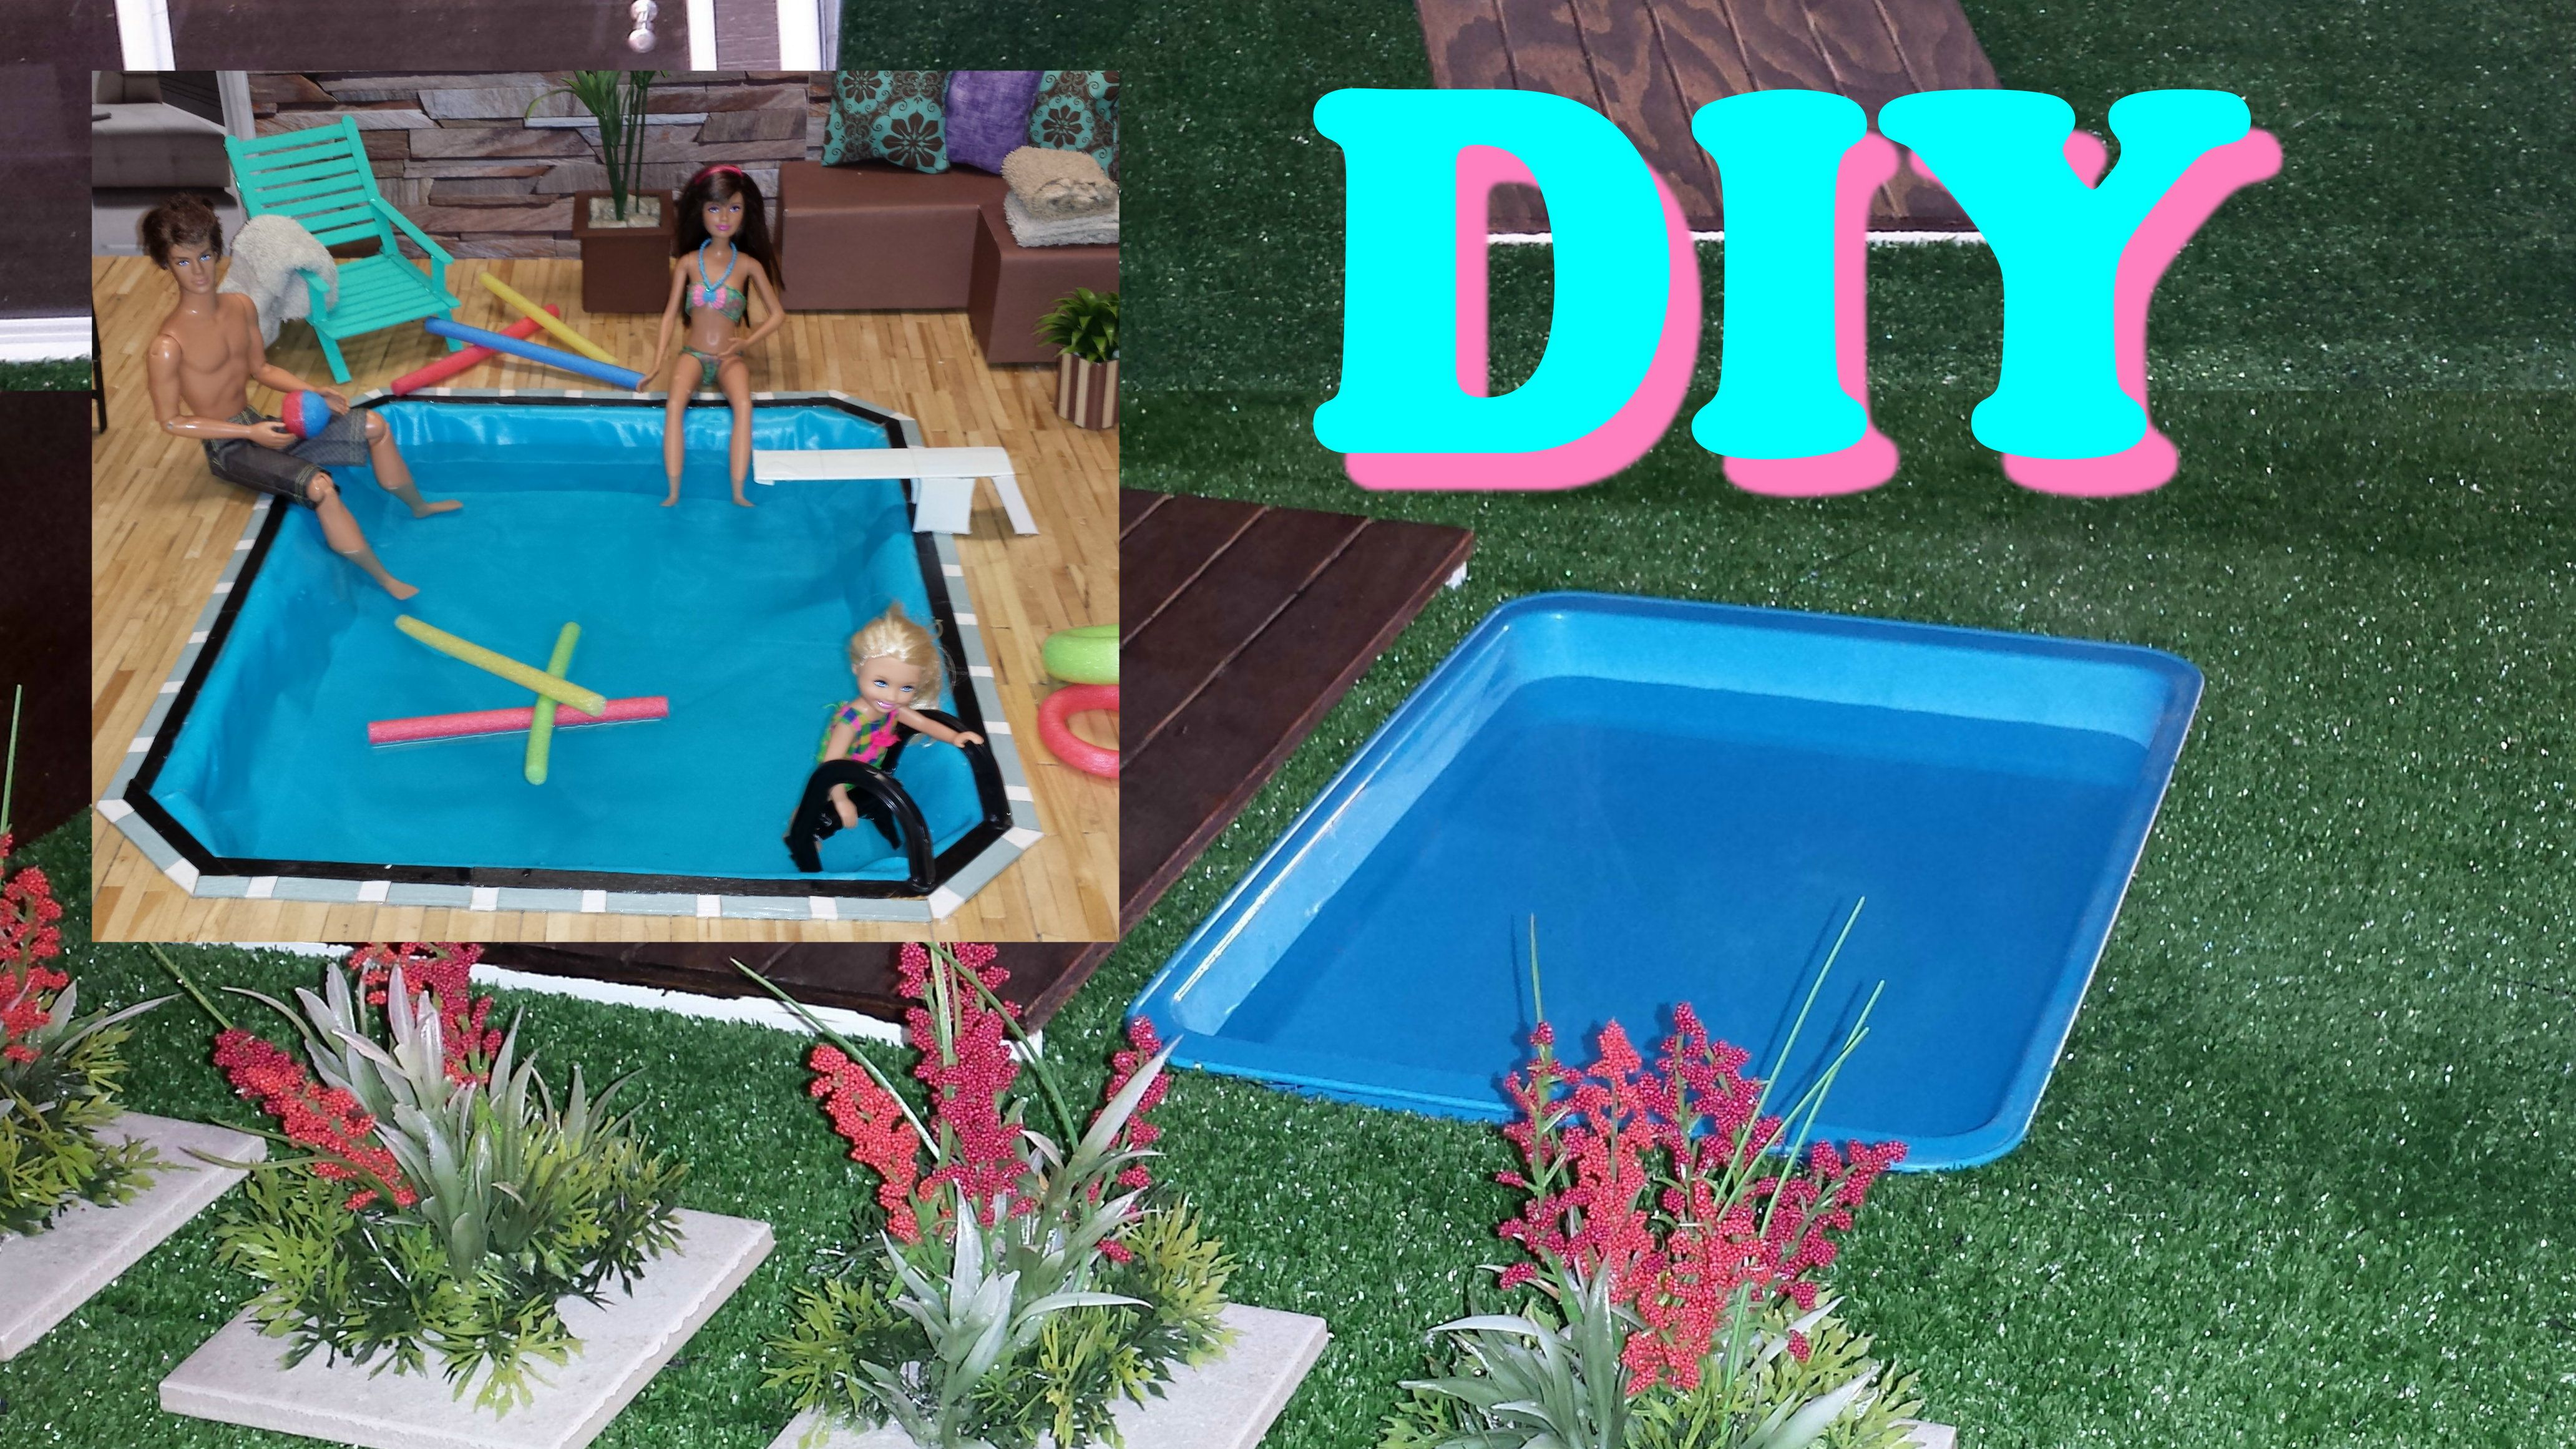 5 Diy Miniature Swimming Pools Doll Furniture Diy Diy Doll Pool Diy Doll